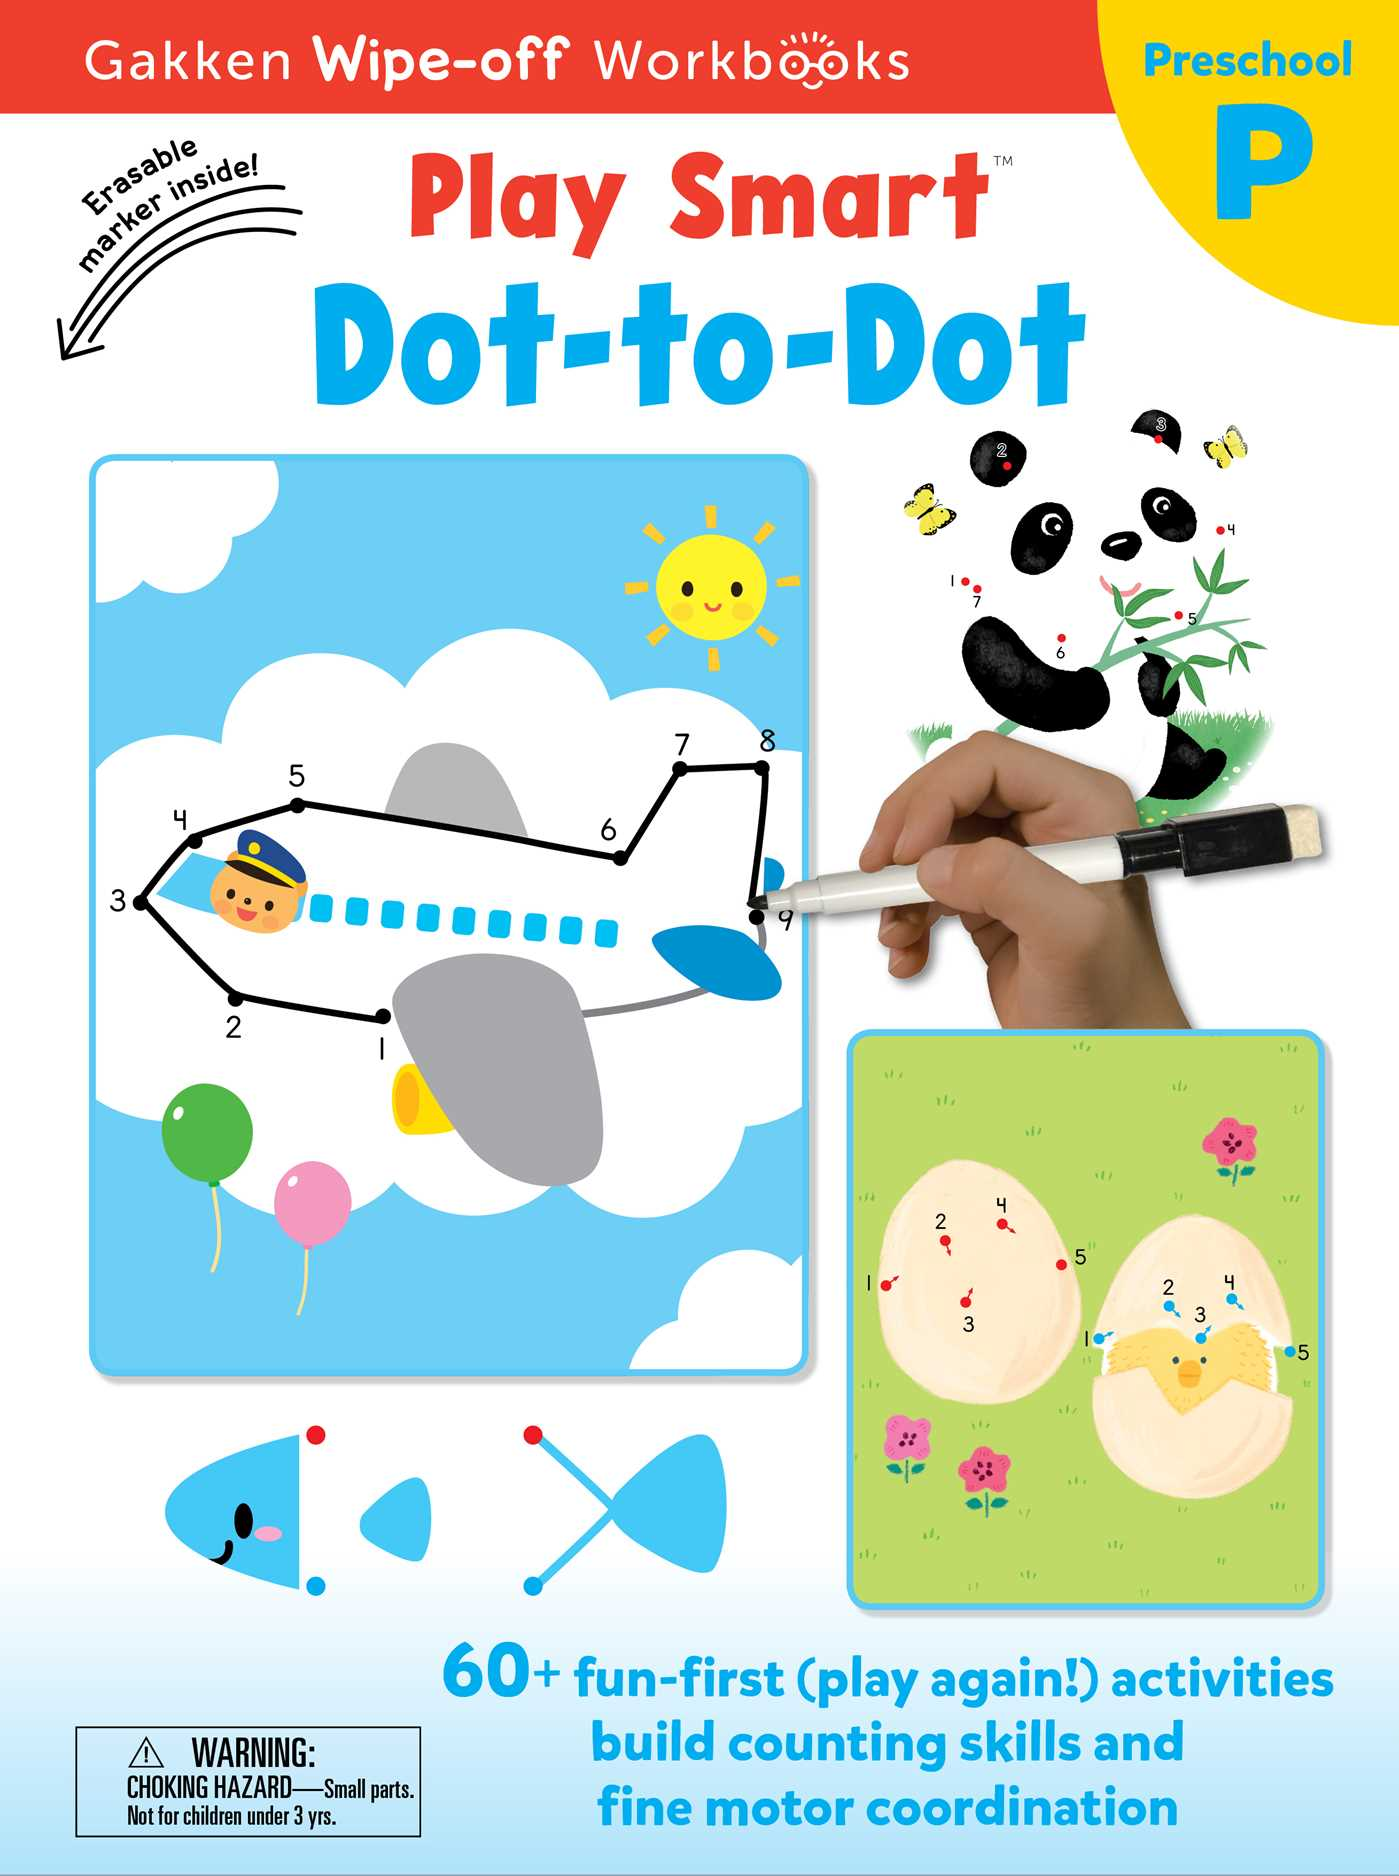 Play Smart Dot-to-Dot | Book by Gakken early childhood experts ...